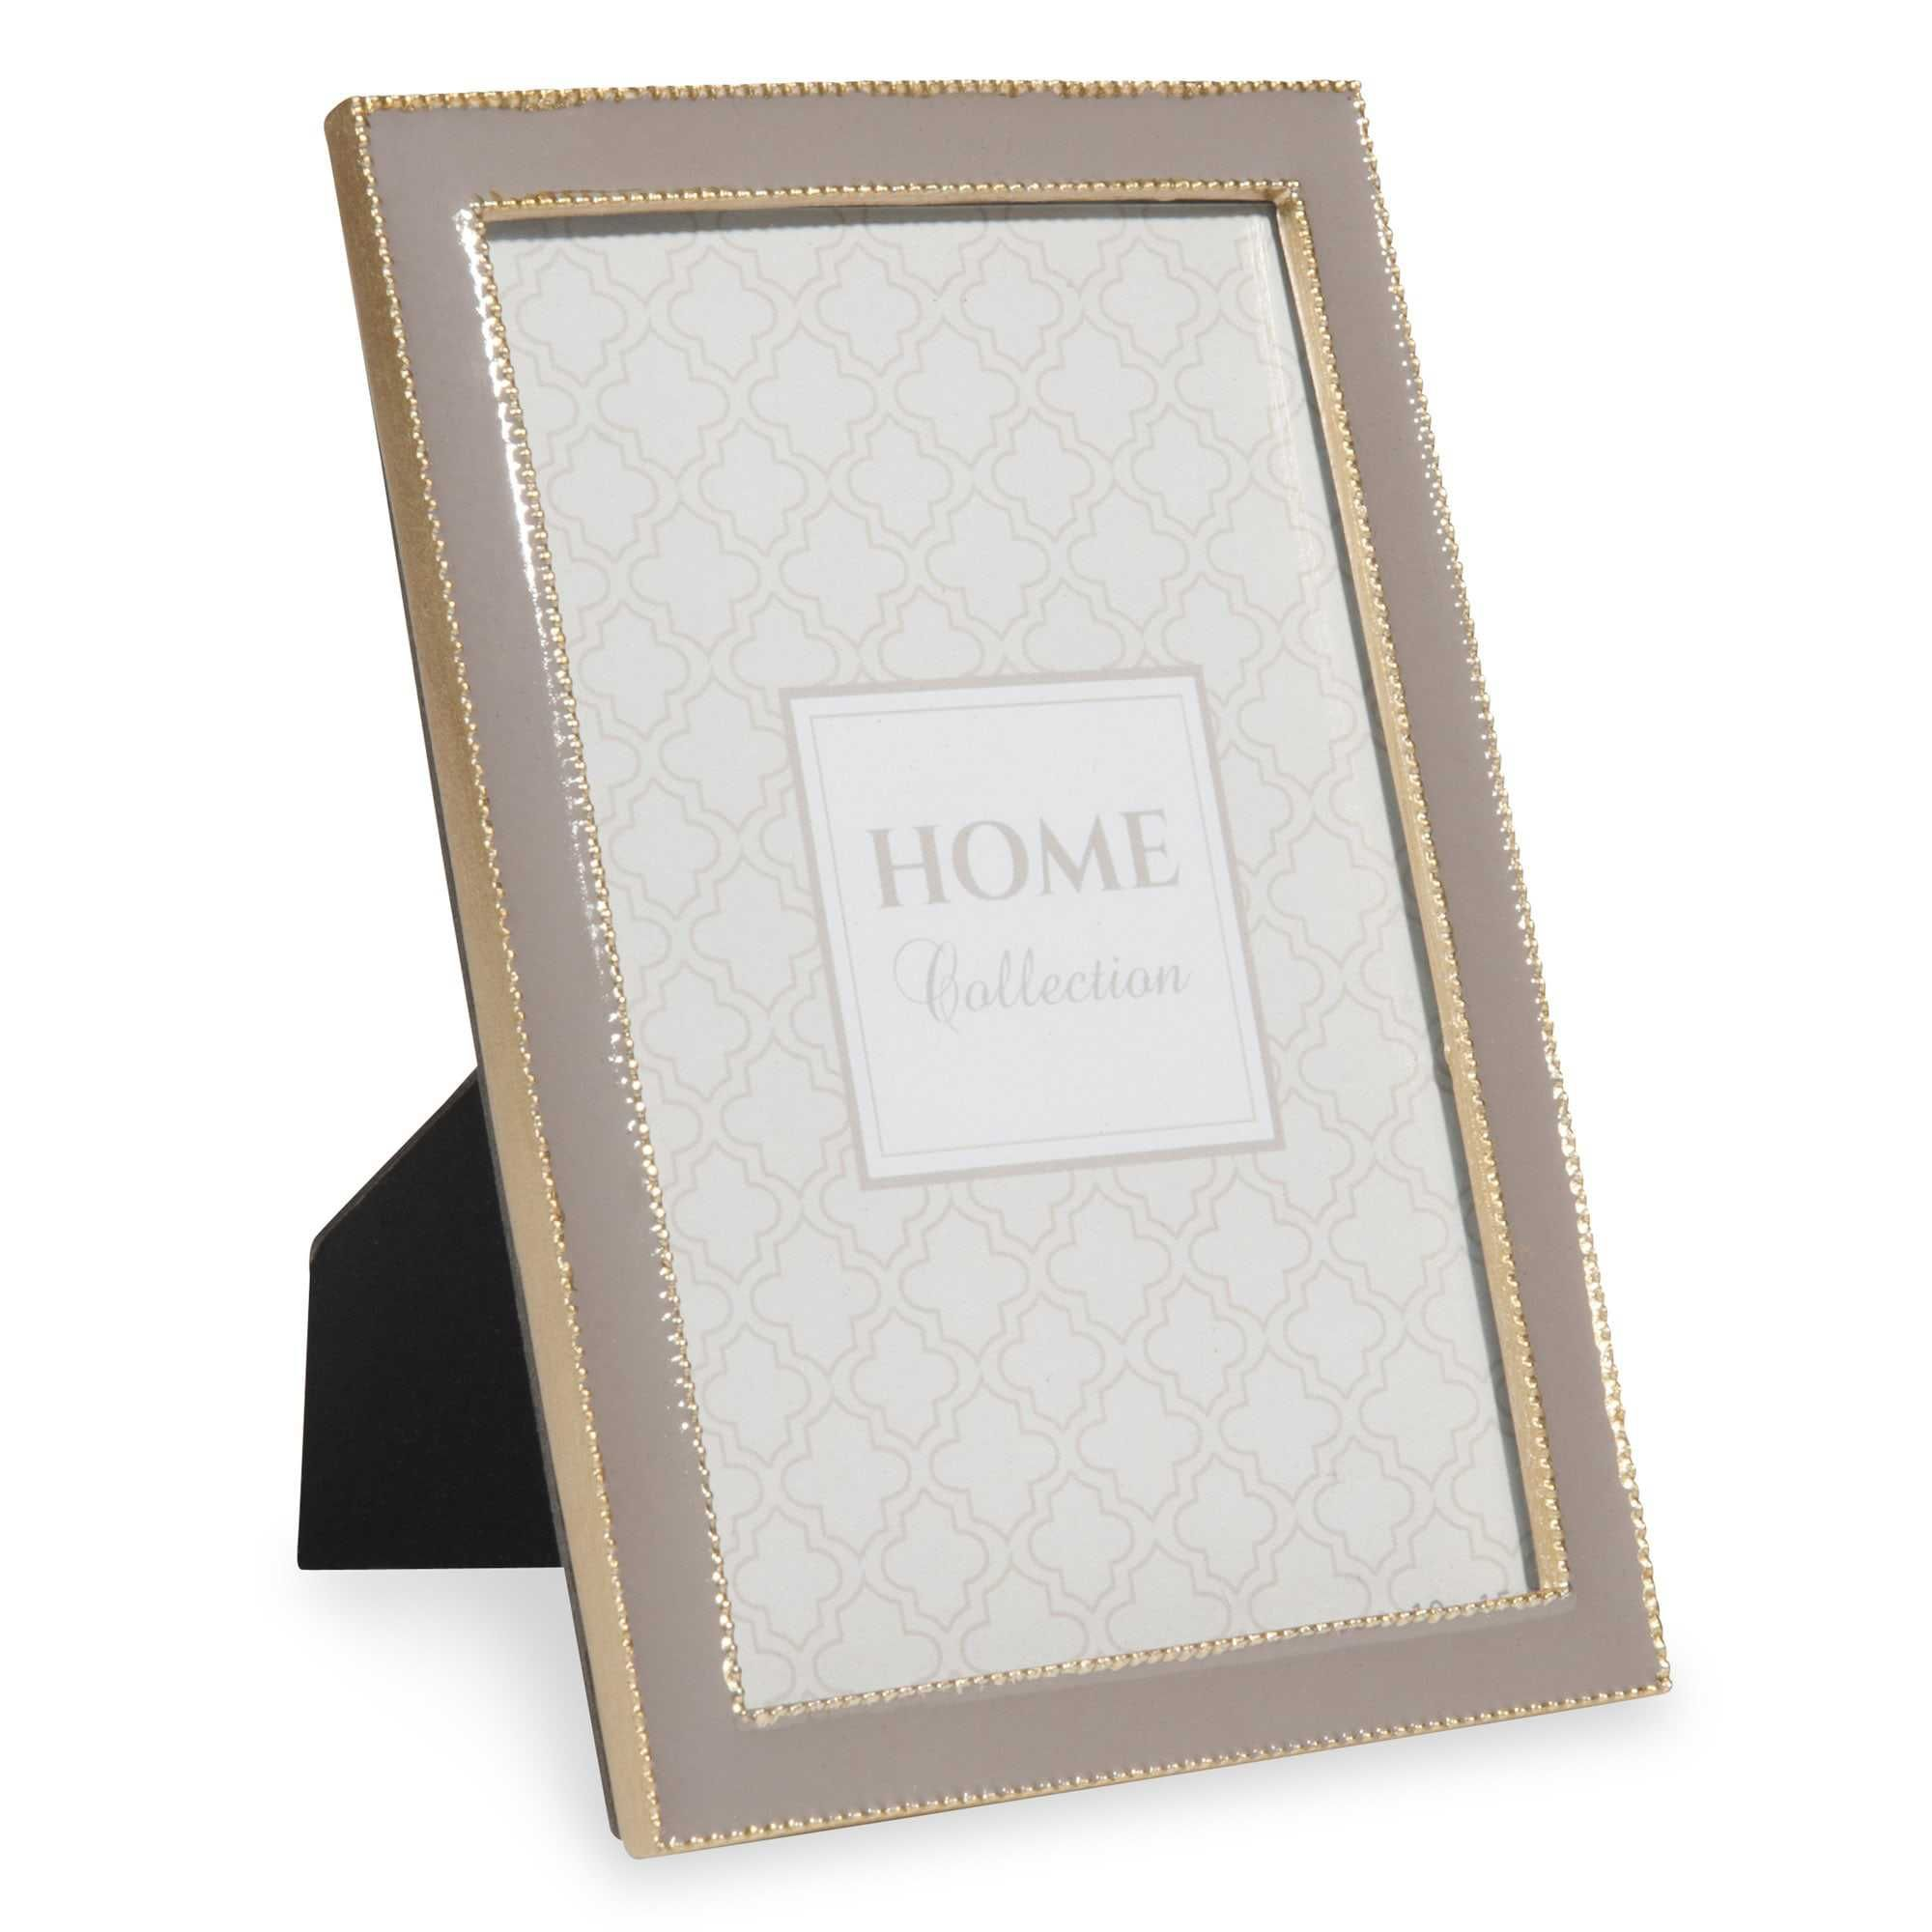 BETHANY grey photo frame 12 x 17 cm | Maisons Du Monde | Pinterest